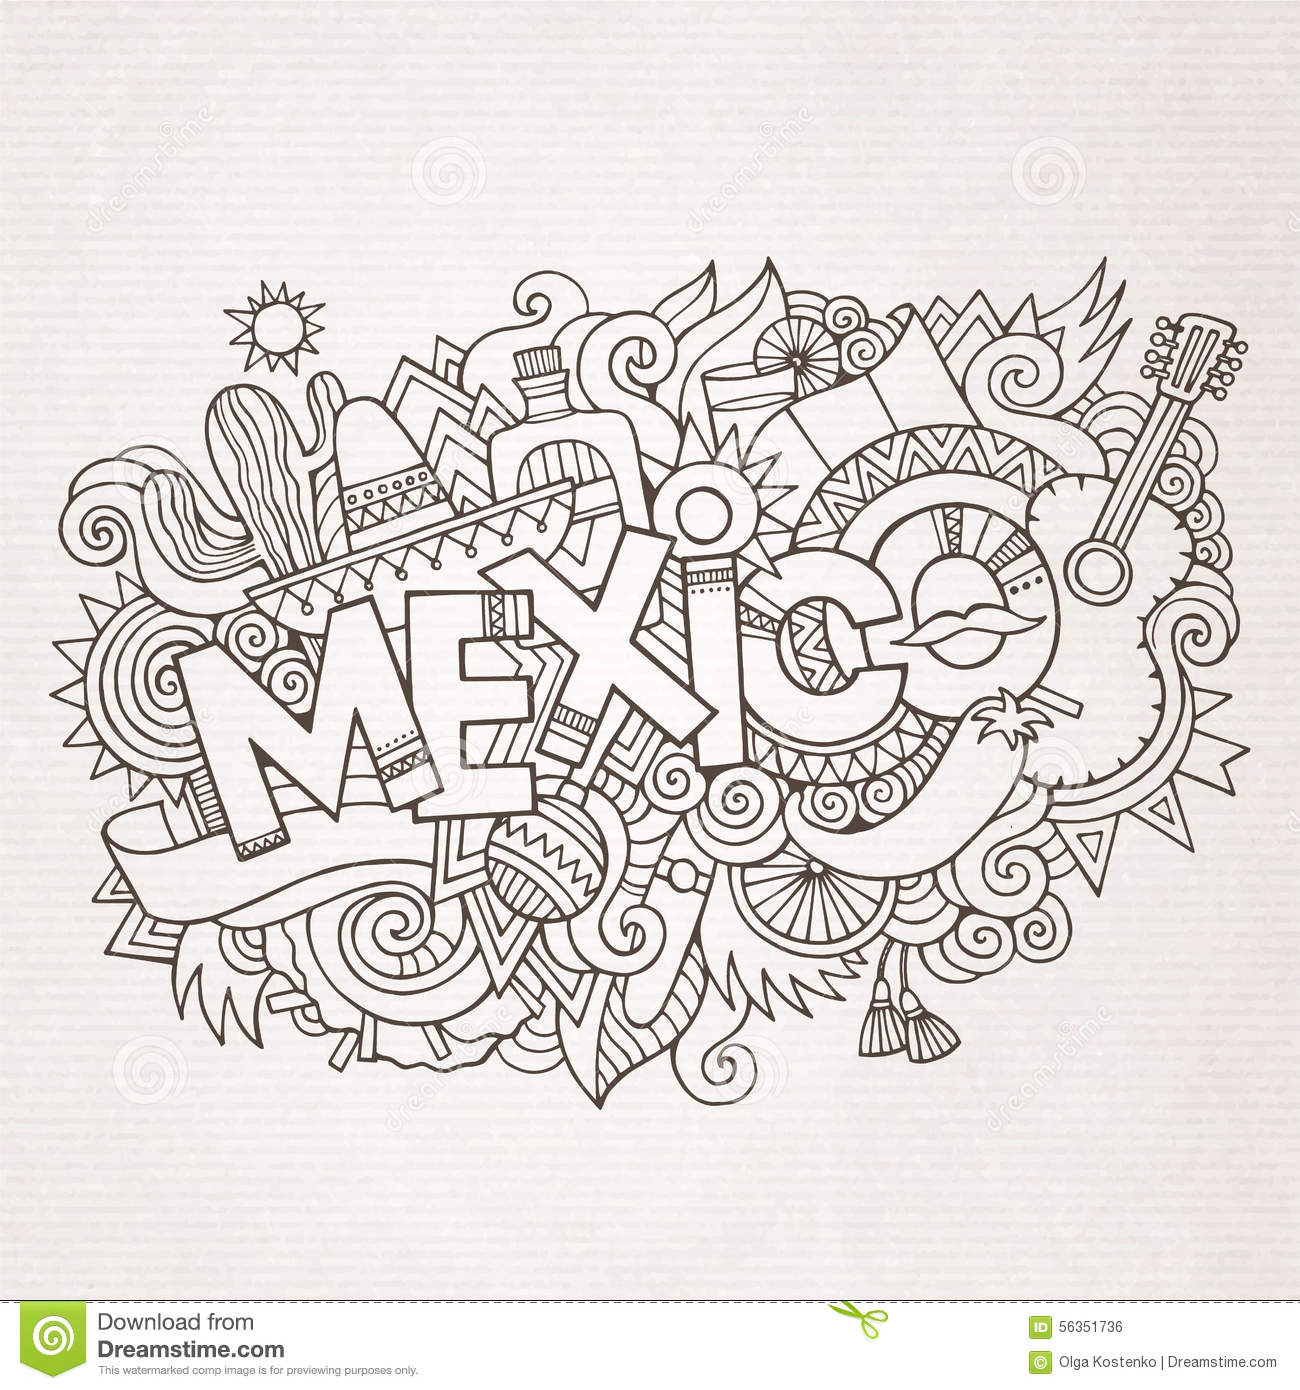 Stock vector music hand lettering and doodles elements - Mexico Country Hand Lettering And Doodles Elements Royalty Free Stock Image